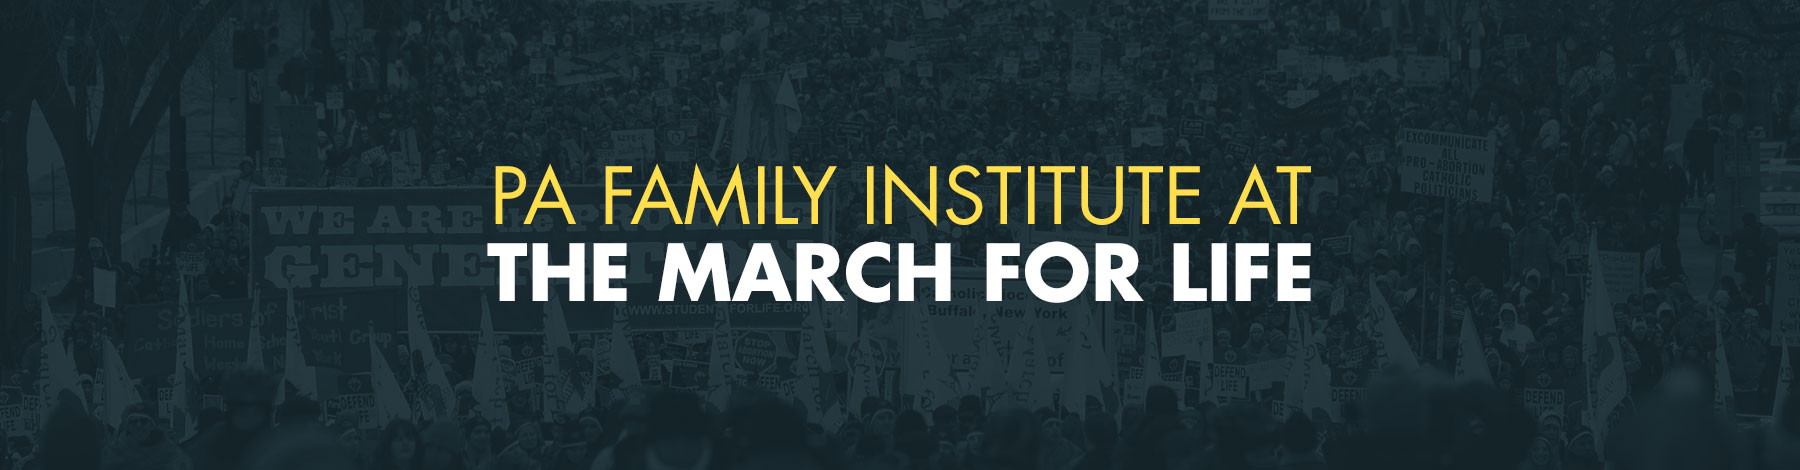 PA Family Institute at the March for Life